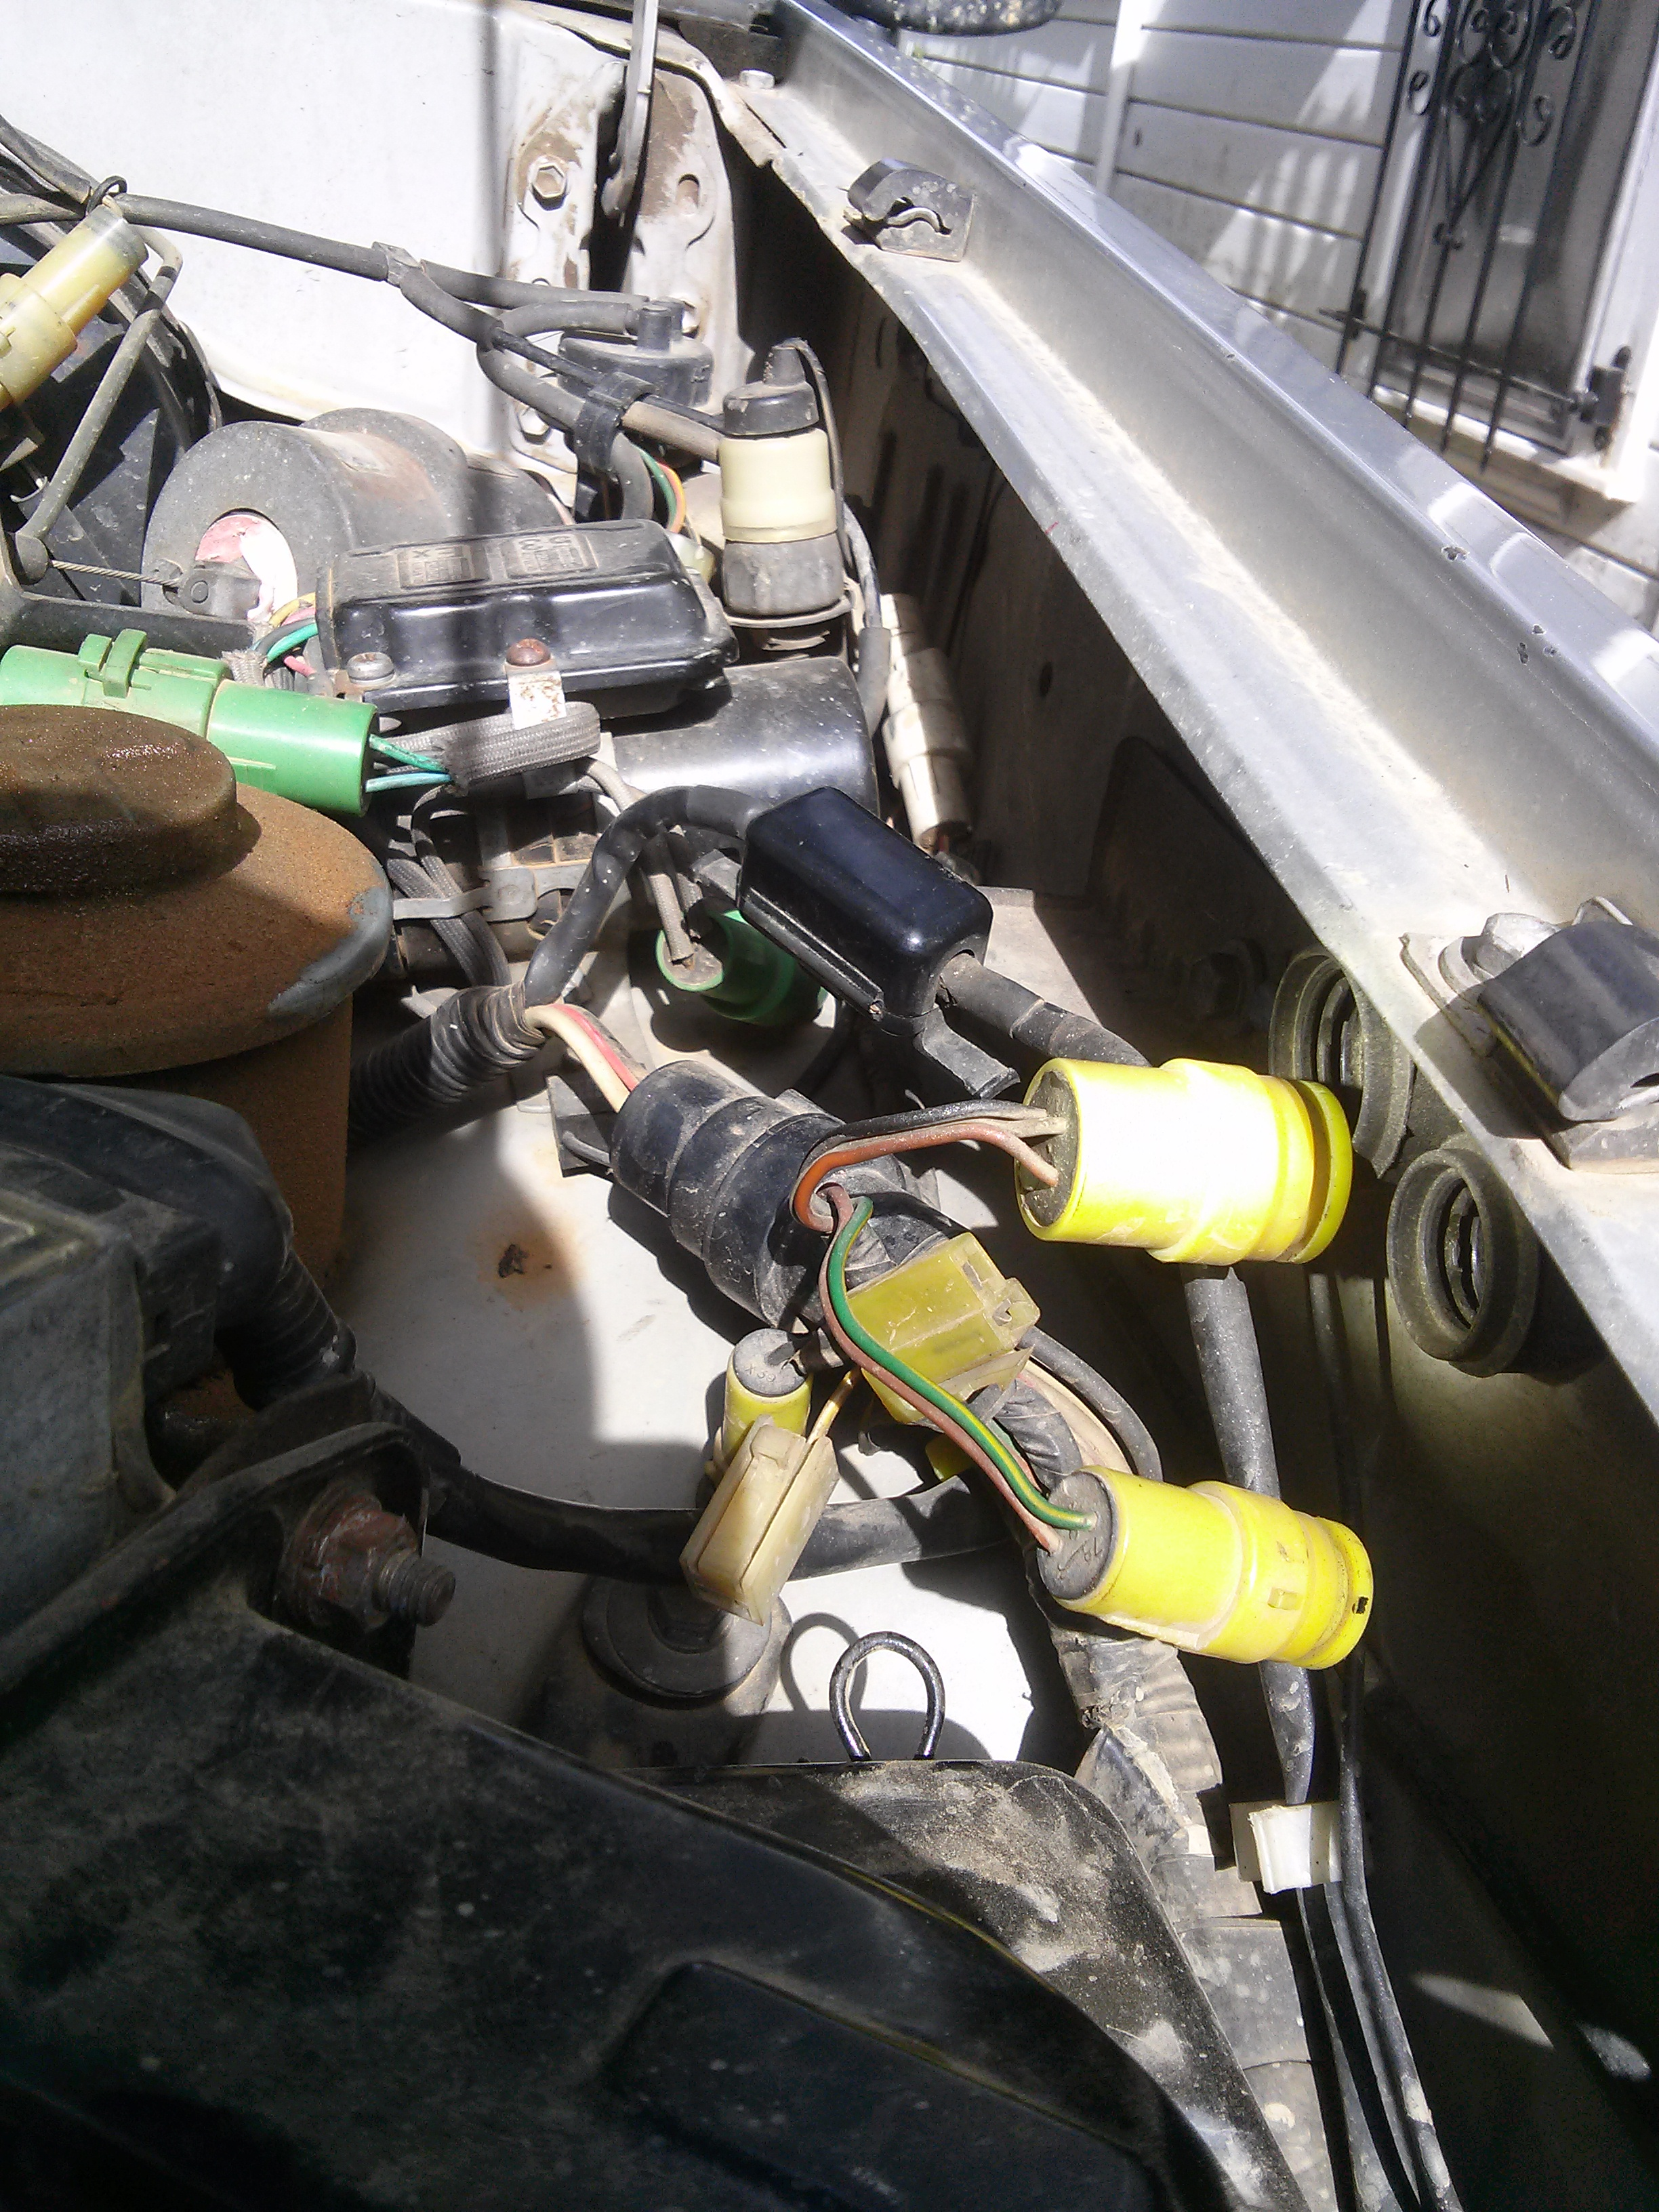 1986 4runner 22rte, starts on second try when the engine is